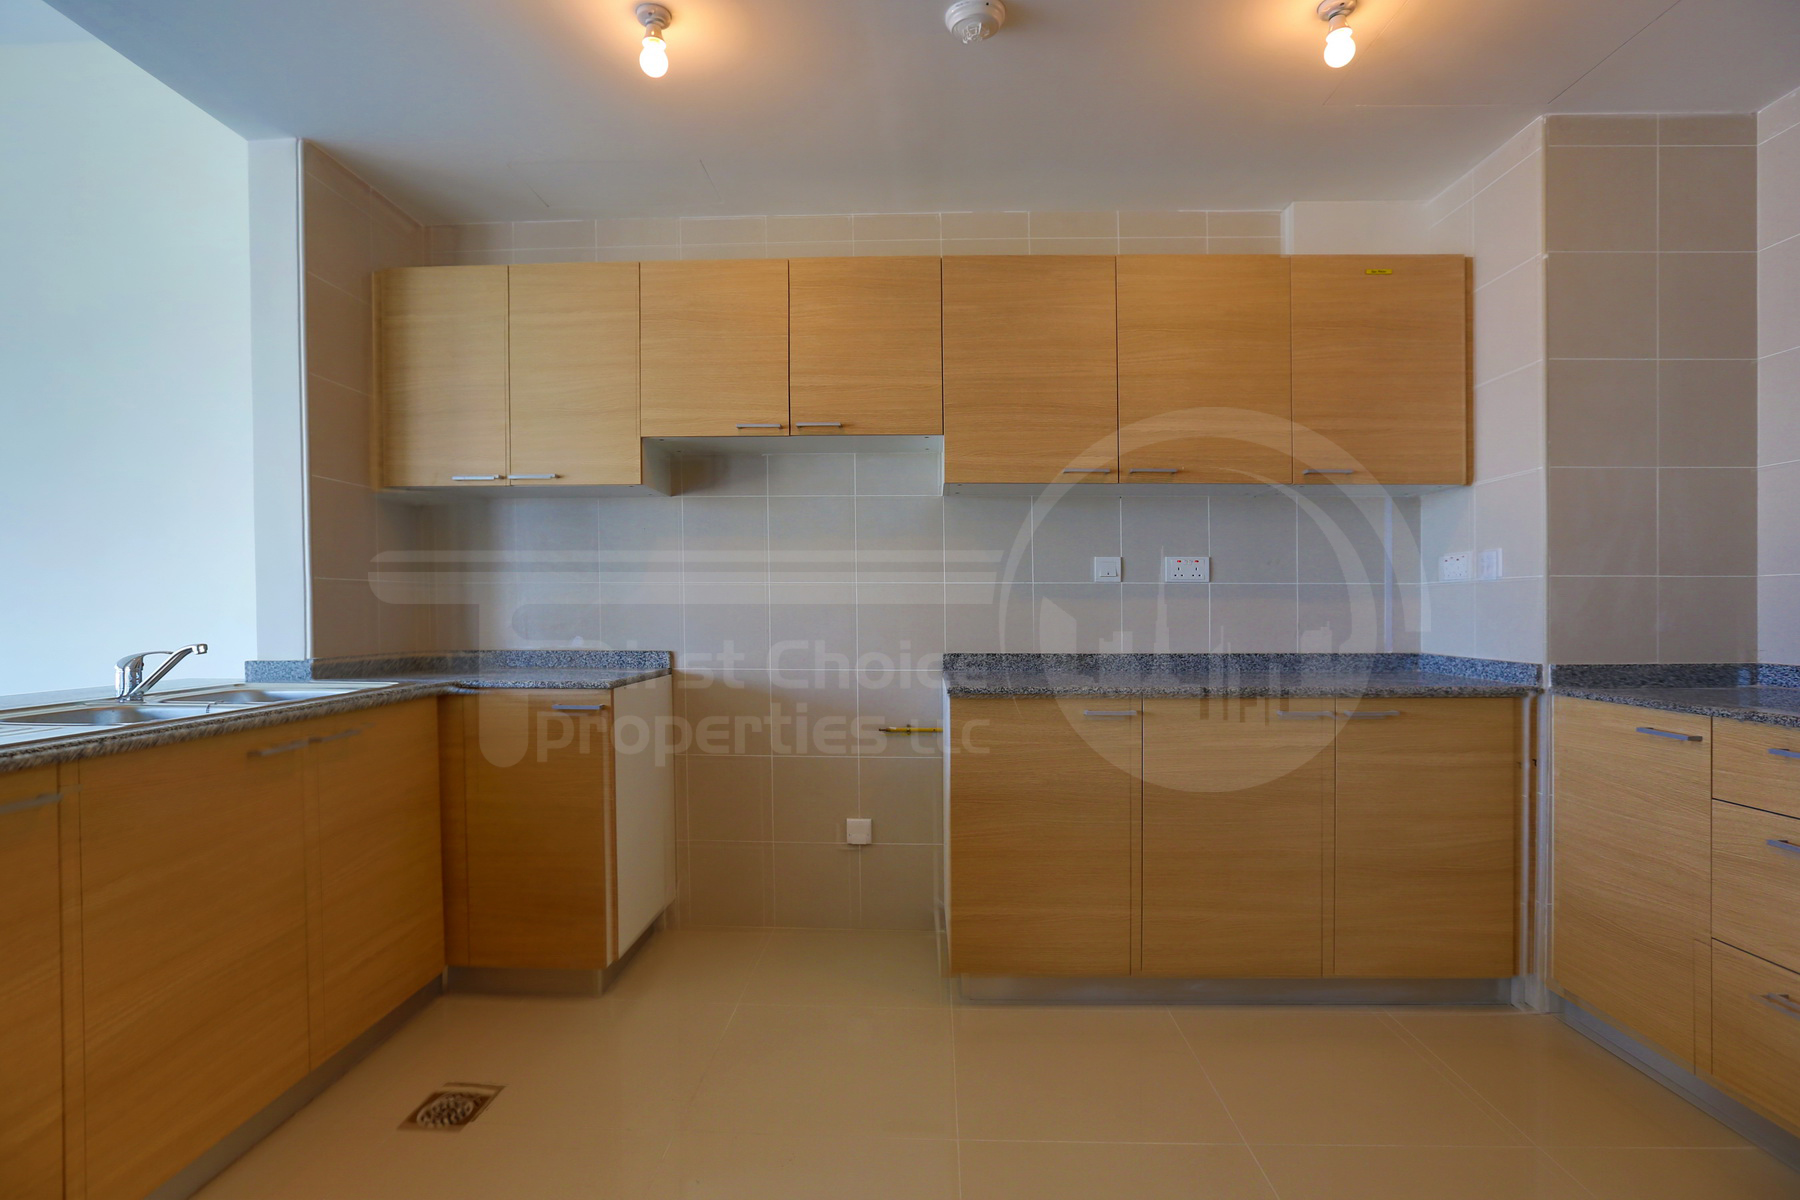 2BR Apartment - Abu Dhabi - UAE - Al Reem Island - City of Lights - C10 Building (4).JPG